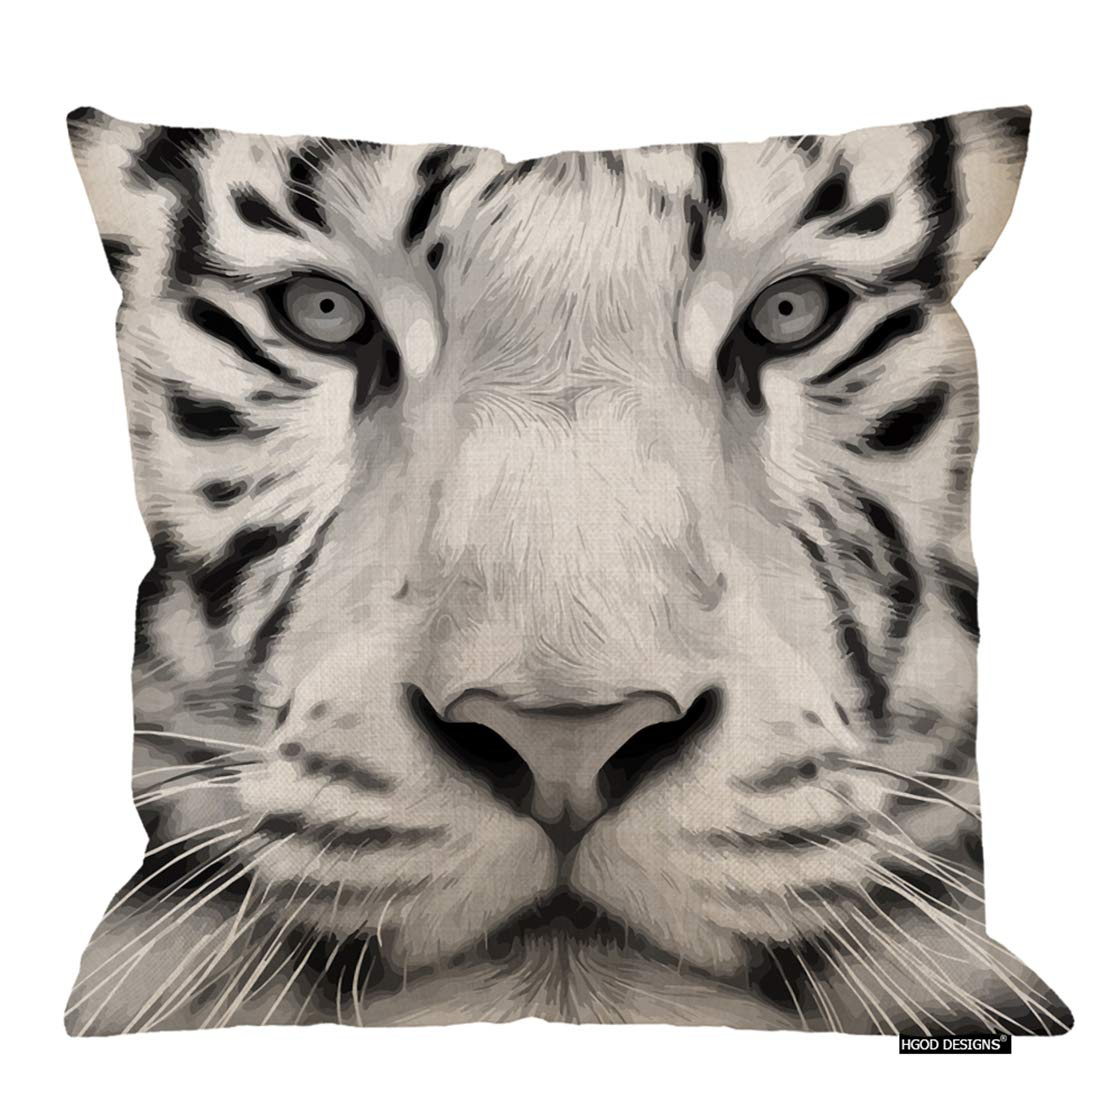 HGOD DESIGNS Tiger Throw Pillow,Animal Gray Scale Closeup Portrait of A White Bengal Tiger Decorative Cushion Cover Cotton Linen Square Throw Pillow ...